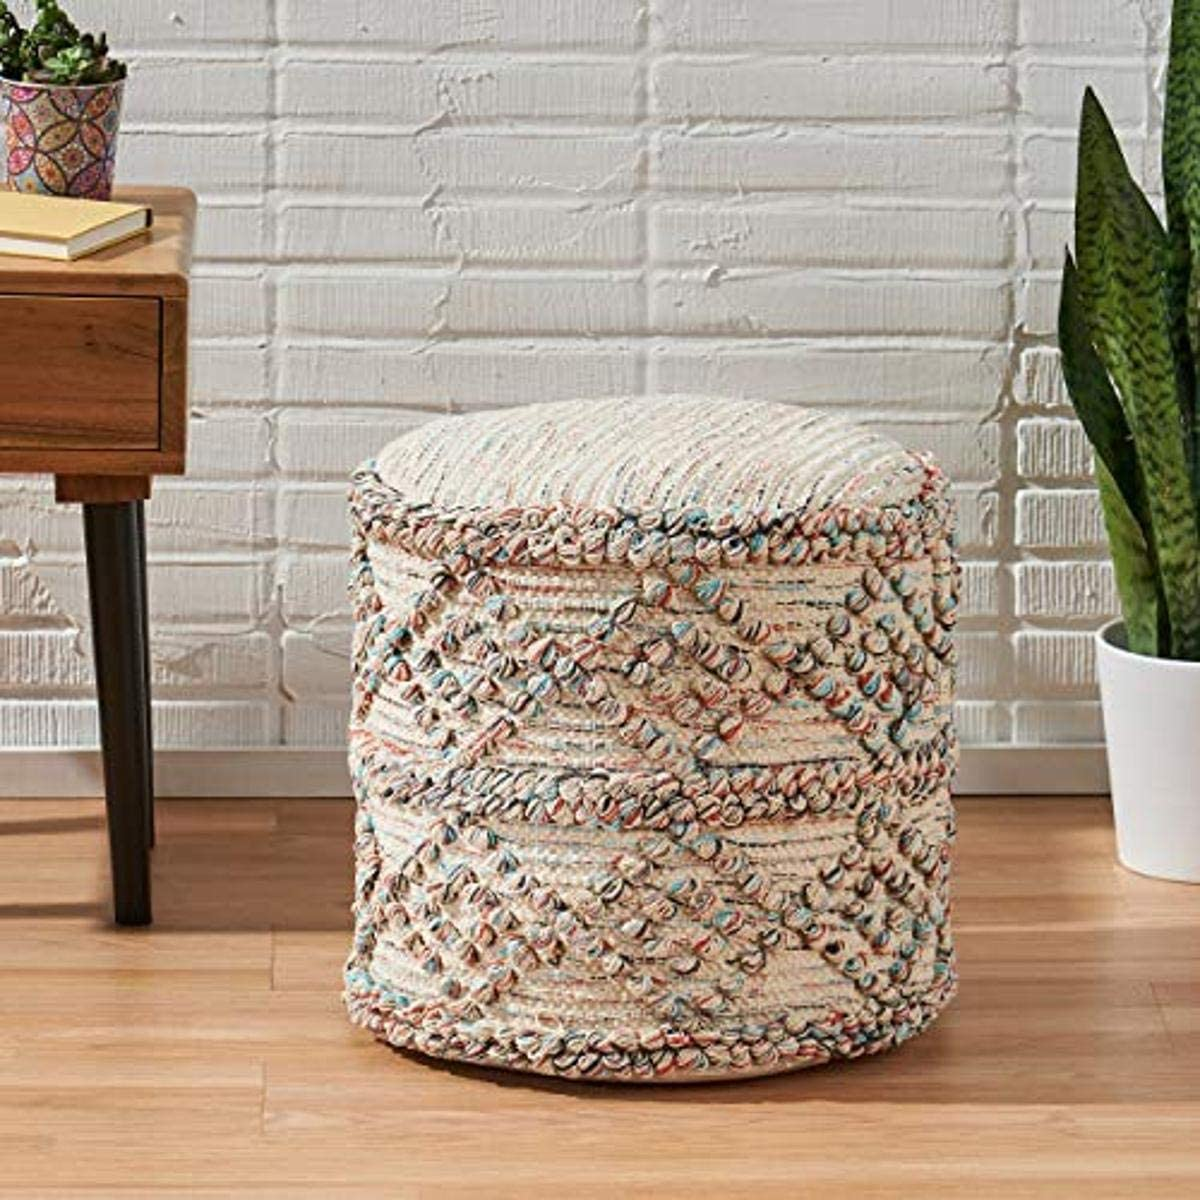 Christopher Knight Large-scale sale Home Lauren Cheap SALE Start Boho Cylinder Fabric Multic Pouf